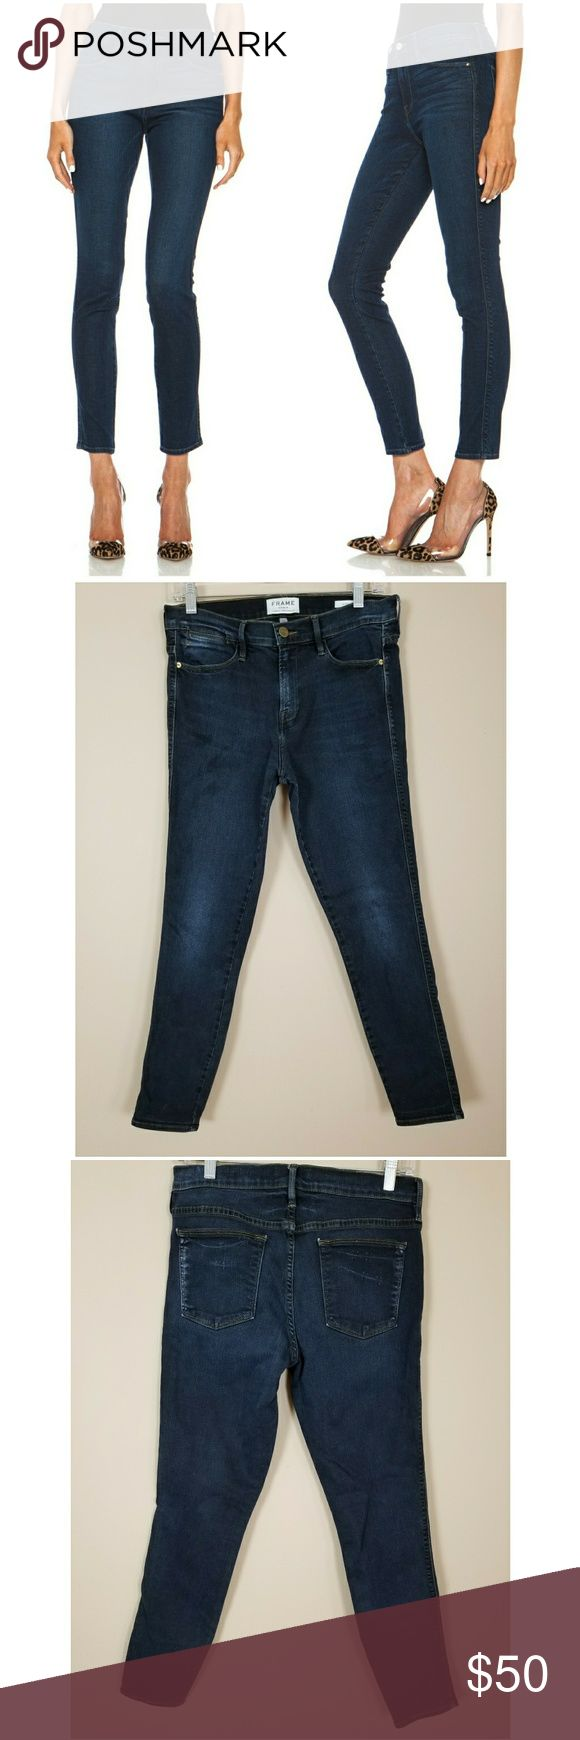 Frame Denim Le High Skinny Jeans in Eaton Wash Brand: Frame Denim Size: 29 Color: Blue Materials: 93% Cotton 5% Polyester 2% Lycra Condition: Gently used no flaws. In this wash the color varies throughout jeans.  Measurements  Waist: 32  Rise: 11  Hips: 34  Inseam: 28  Leg Opening: 6 Frame Denim Jeans Skinny